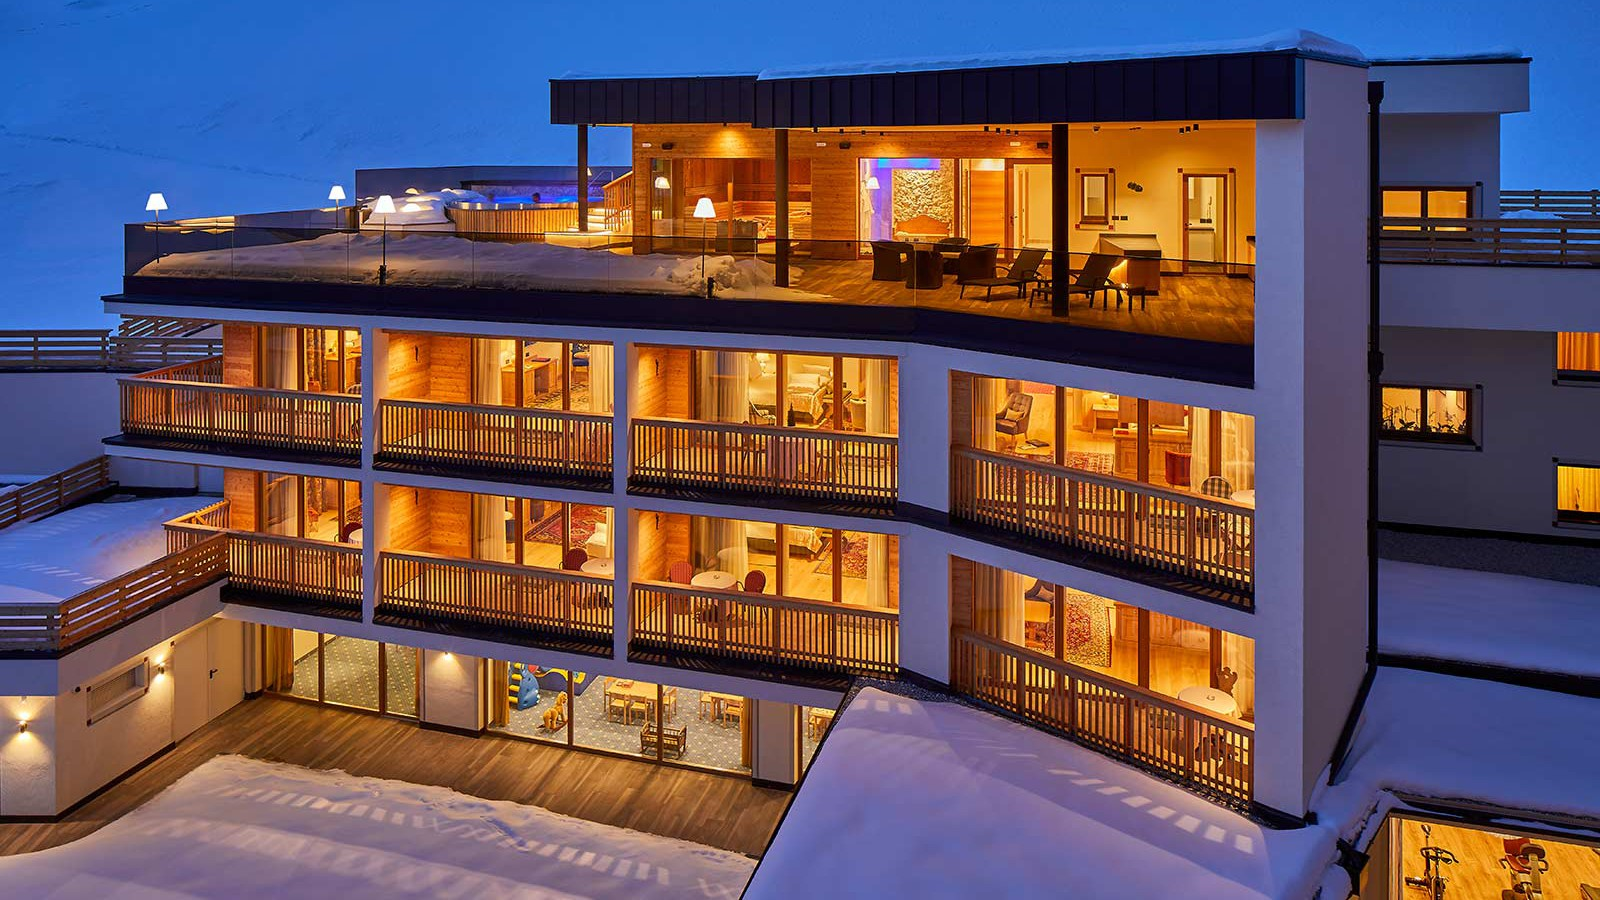 Hotel Sassongher, Corvara and Colfosco - Exterior -Rear - Night